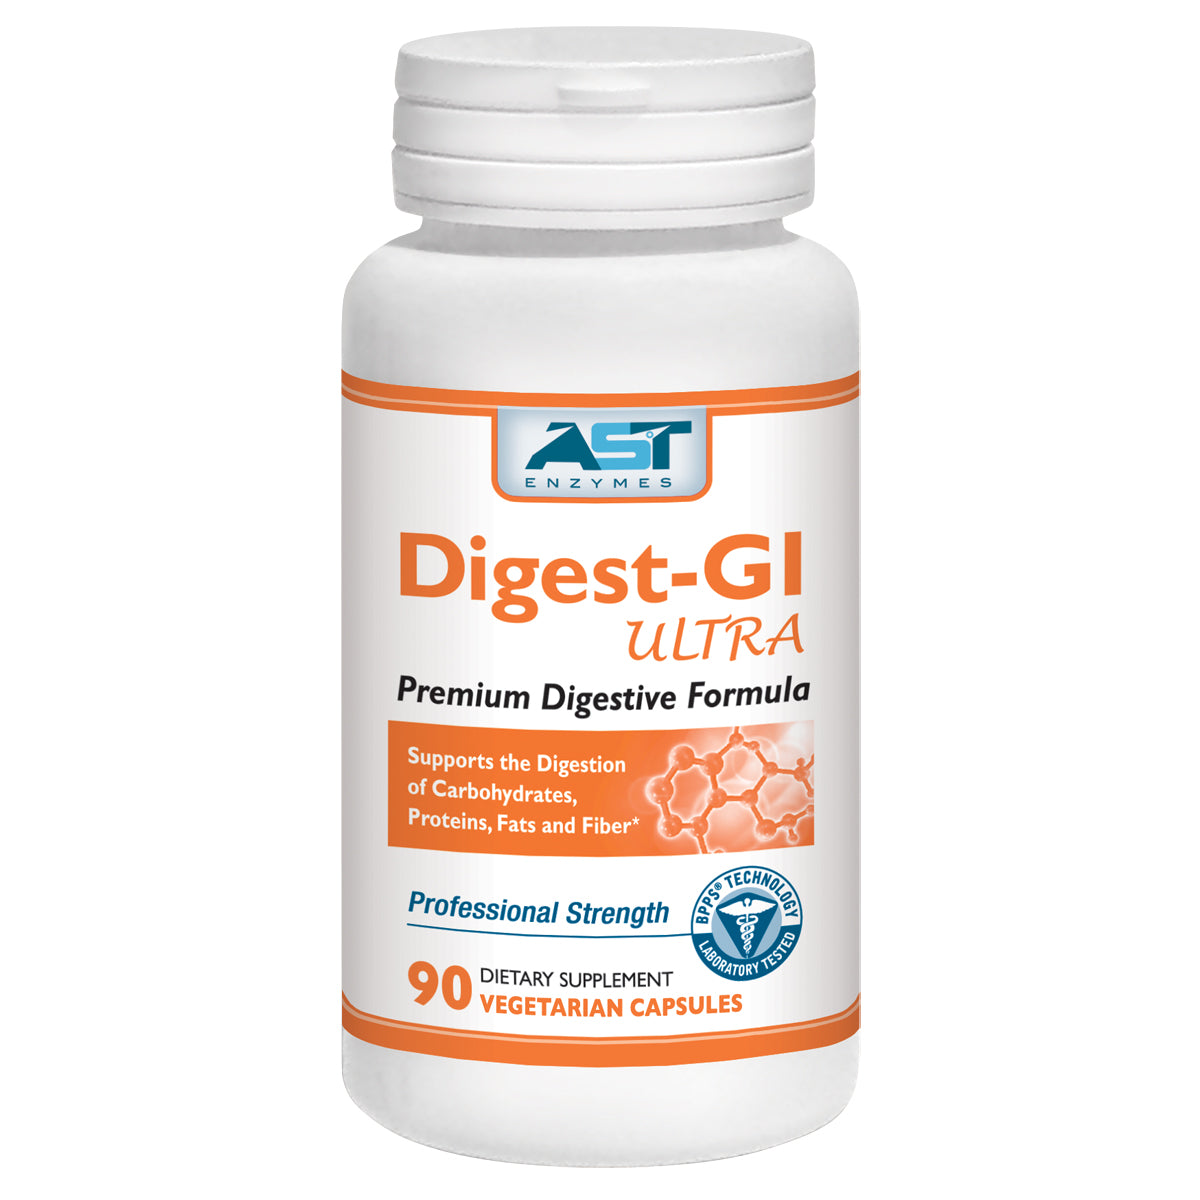 Digest- GI Ultra- Premium Digestive Enzymes - 90 Capsules